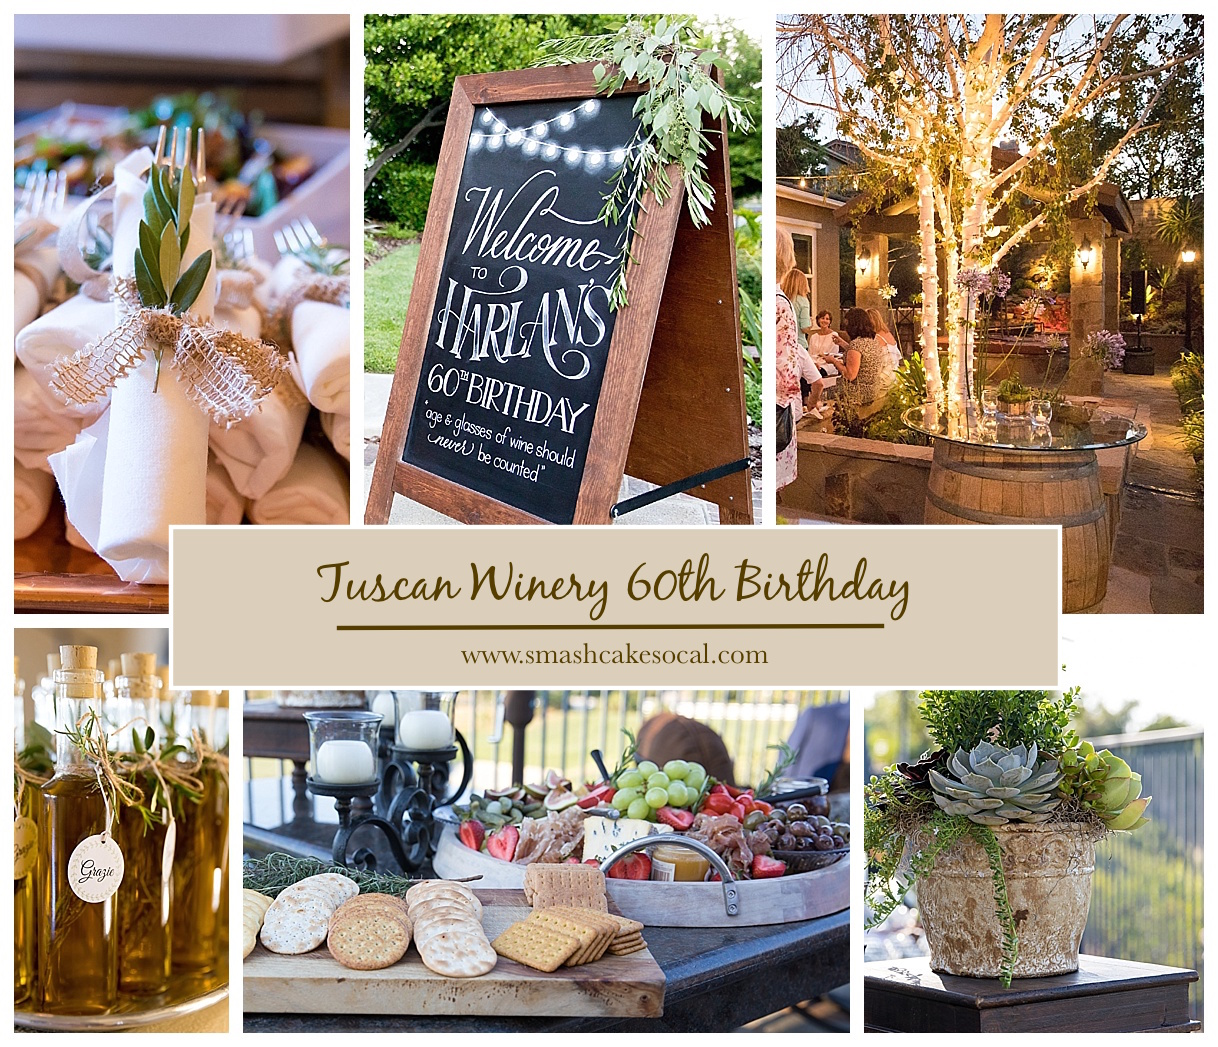 60th Birthday Color Ideas: Tuscan Winery 60th Birthday